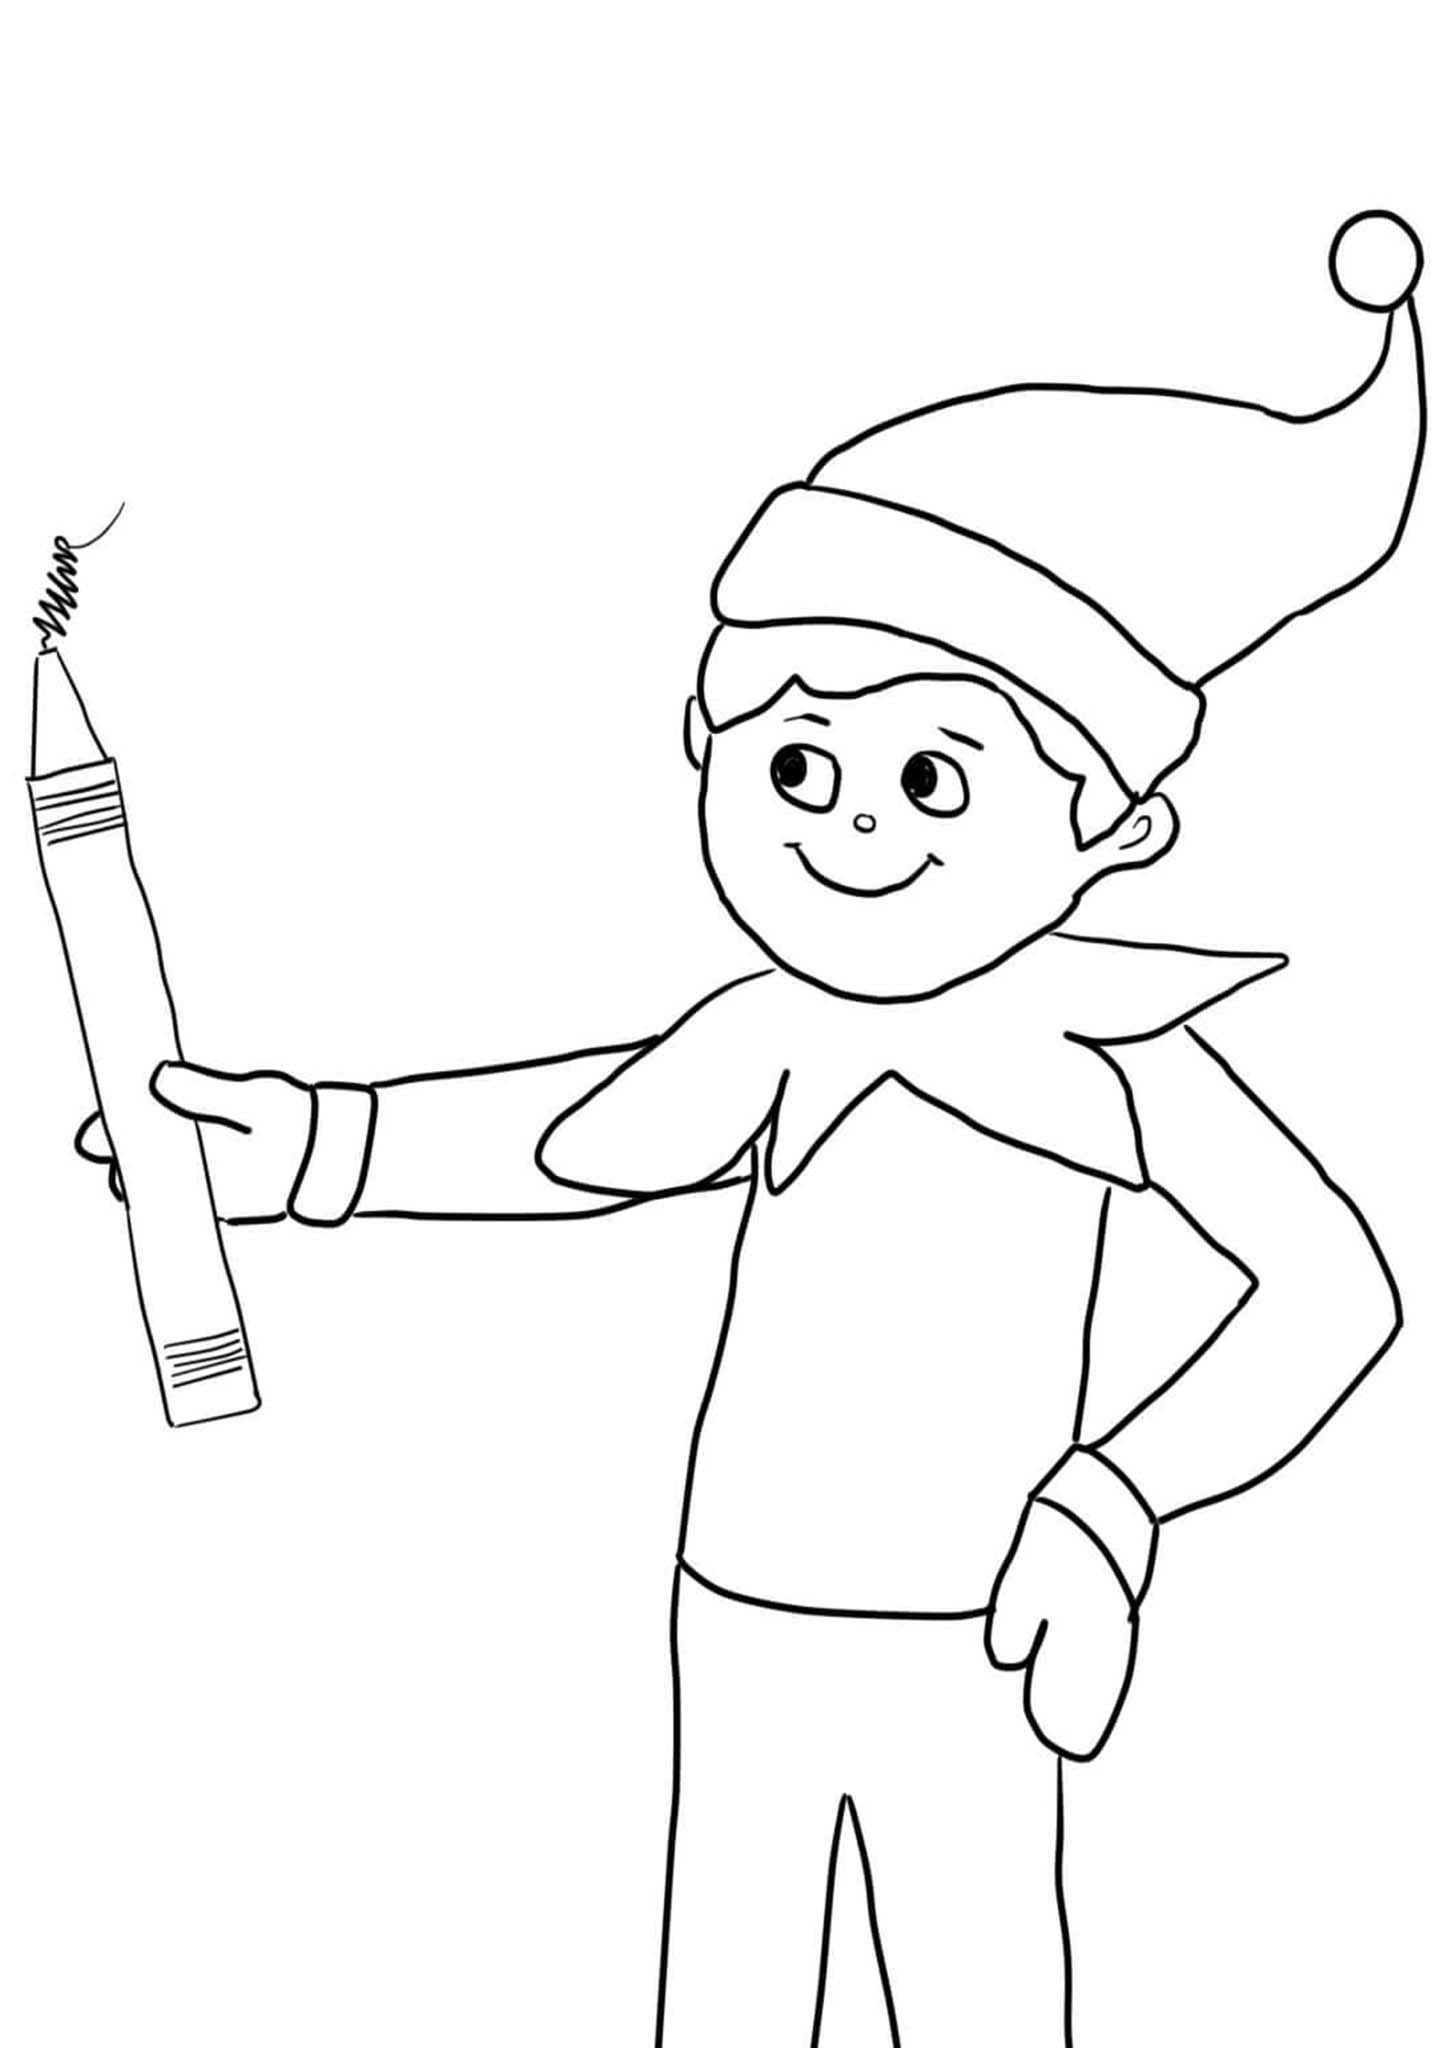 Free Printable Elf On The Shelf Coloring Pages Coloring Pages Valentines Day Coloring Page Easter Coloring Pages